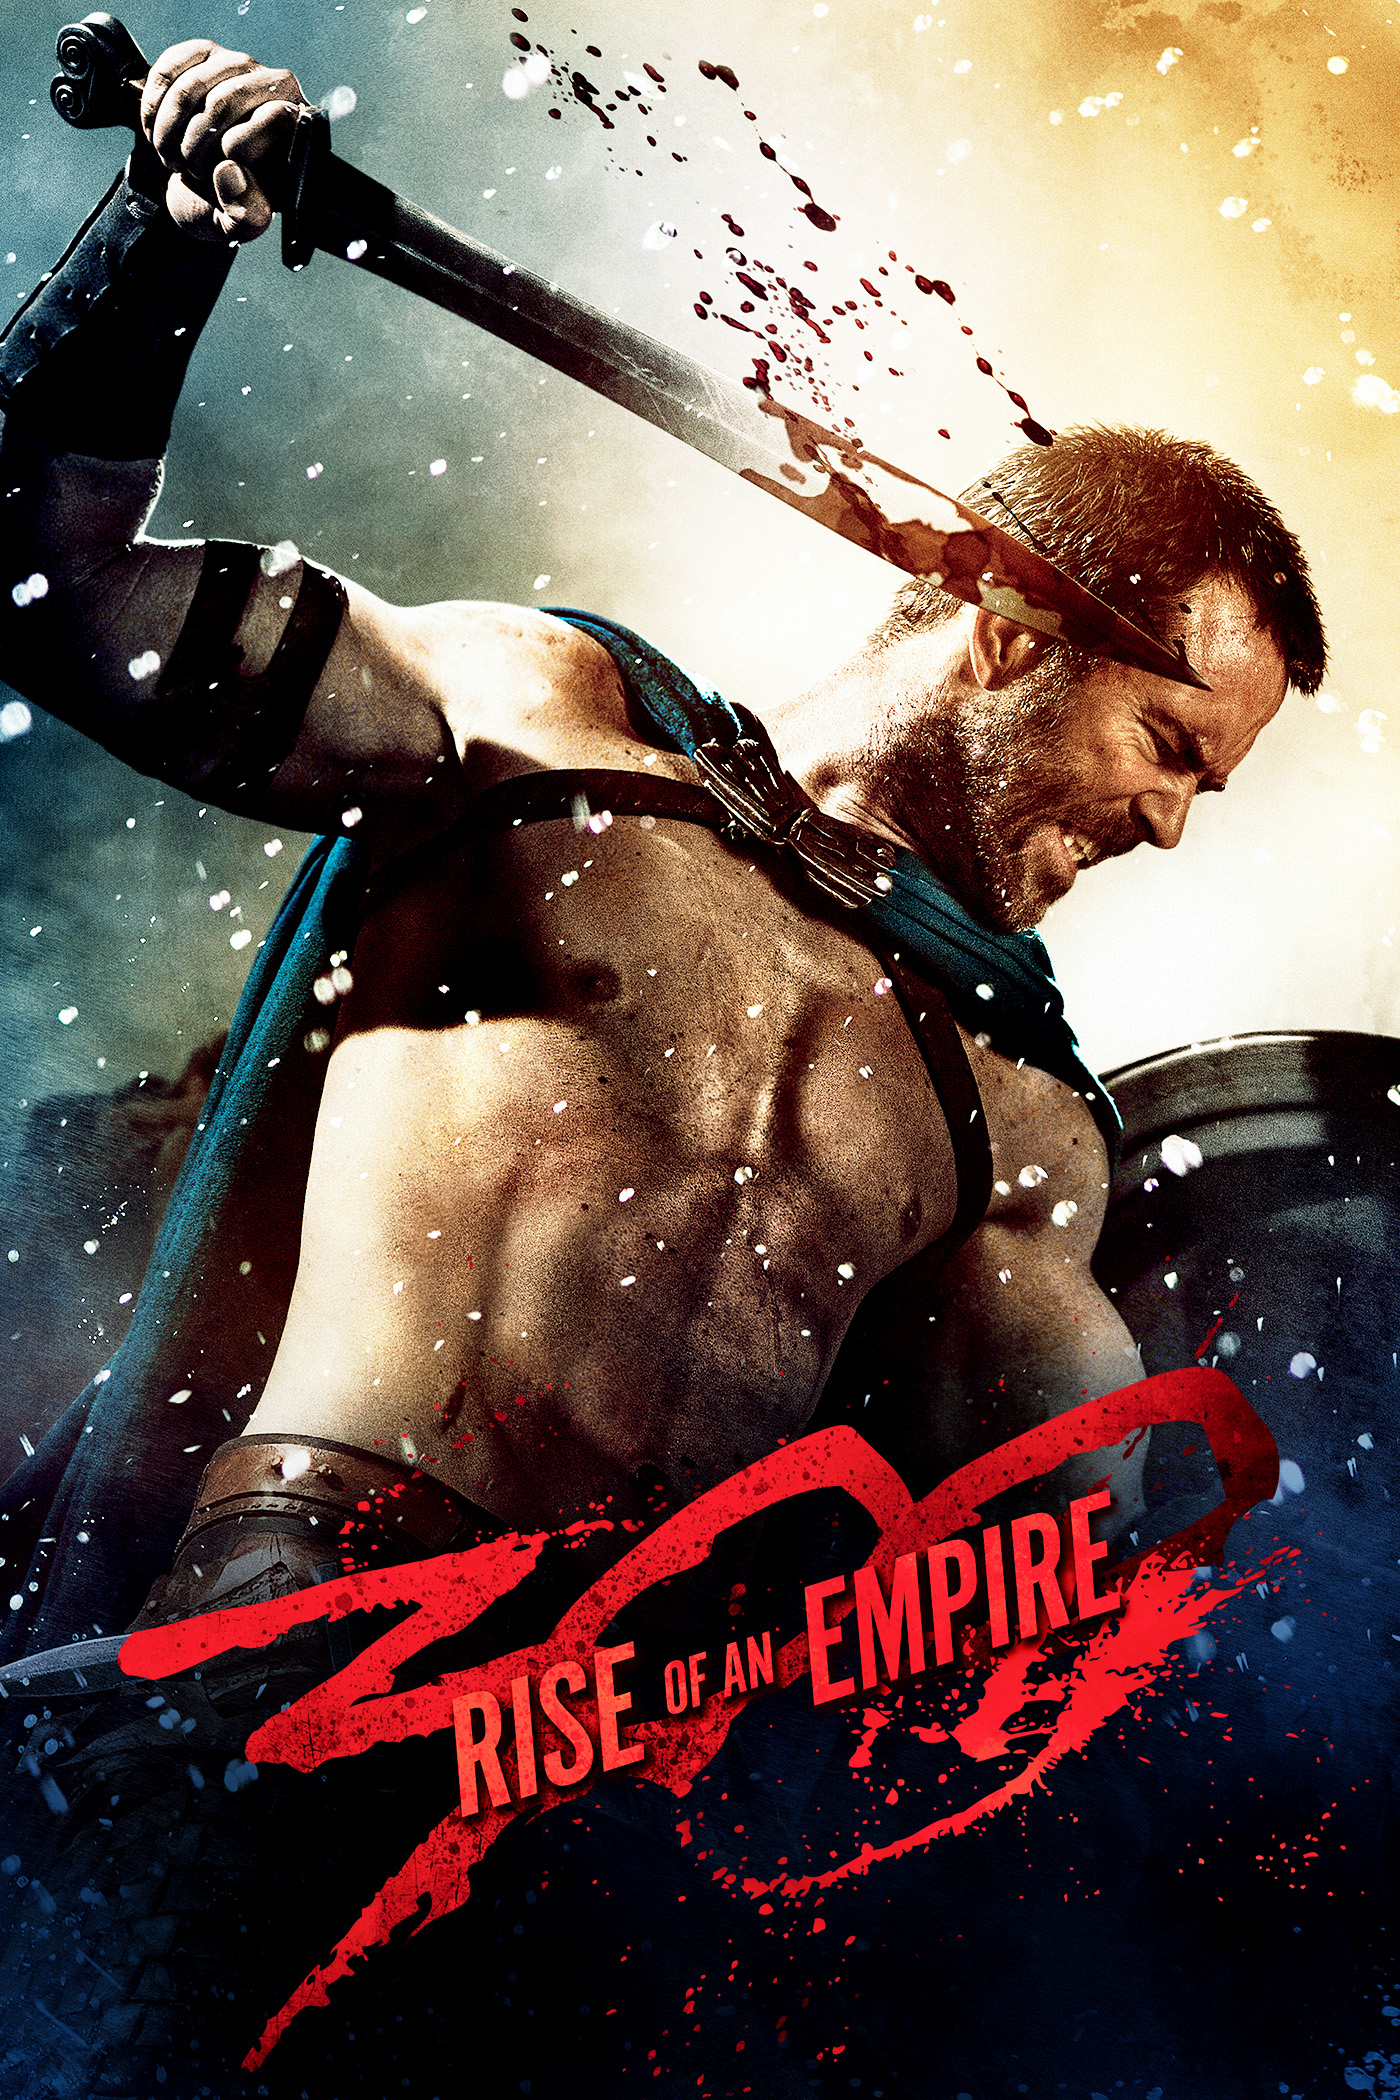 300 – Rise of an Empire: Watchable but not great